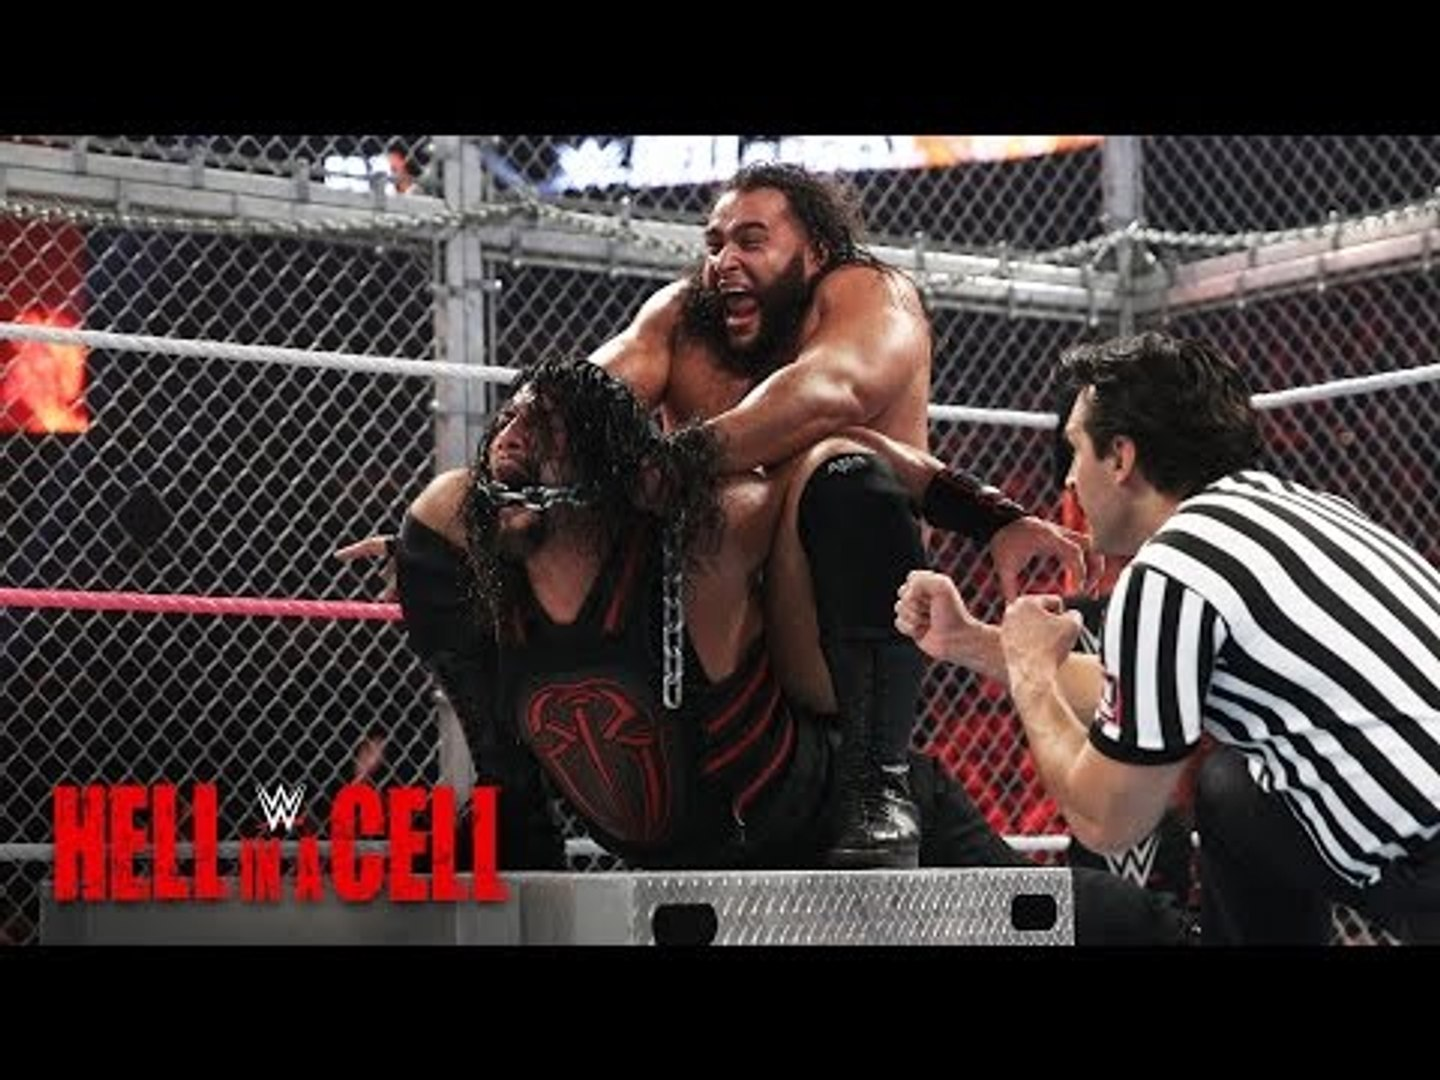 Roman Reigns vs Rusev Full Match - WWE United States Championship ¦ WWE Hell in a Cell 2016